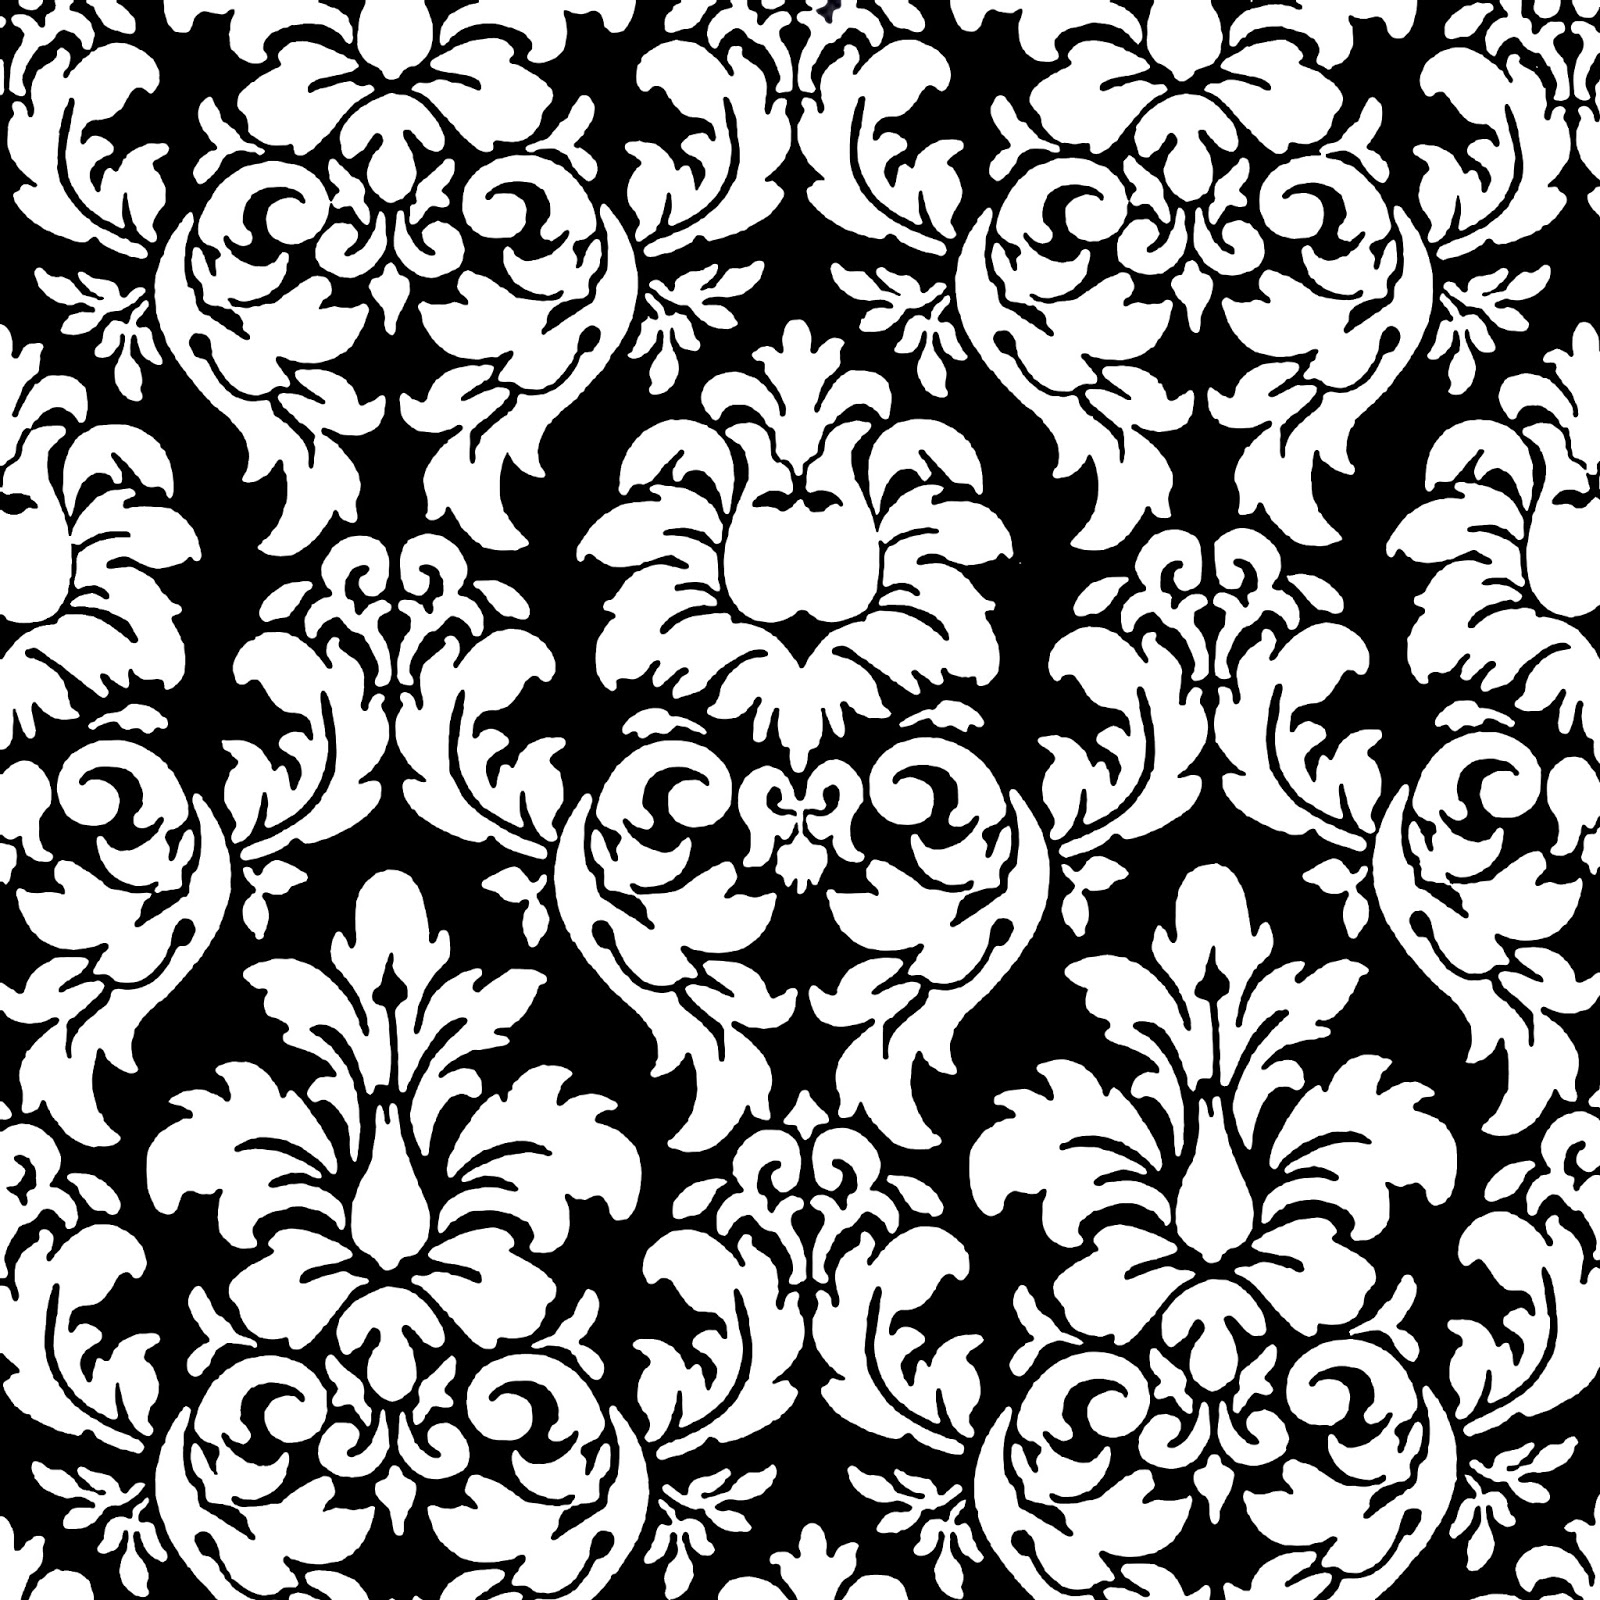 Scrapbook paper designs to print black and white